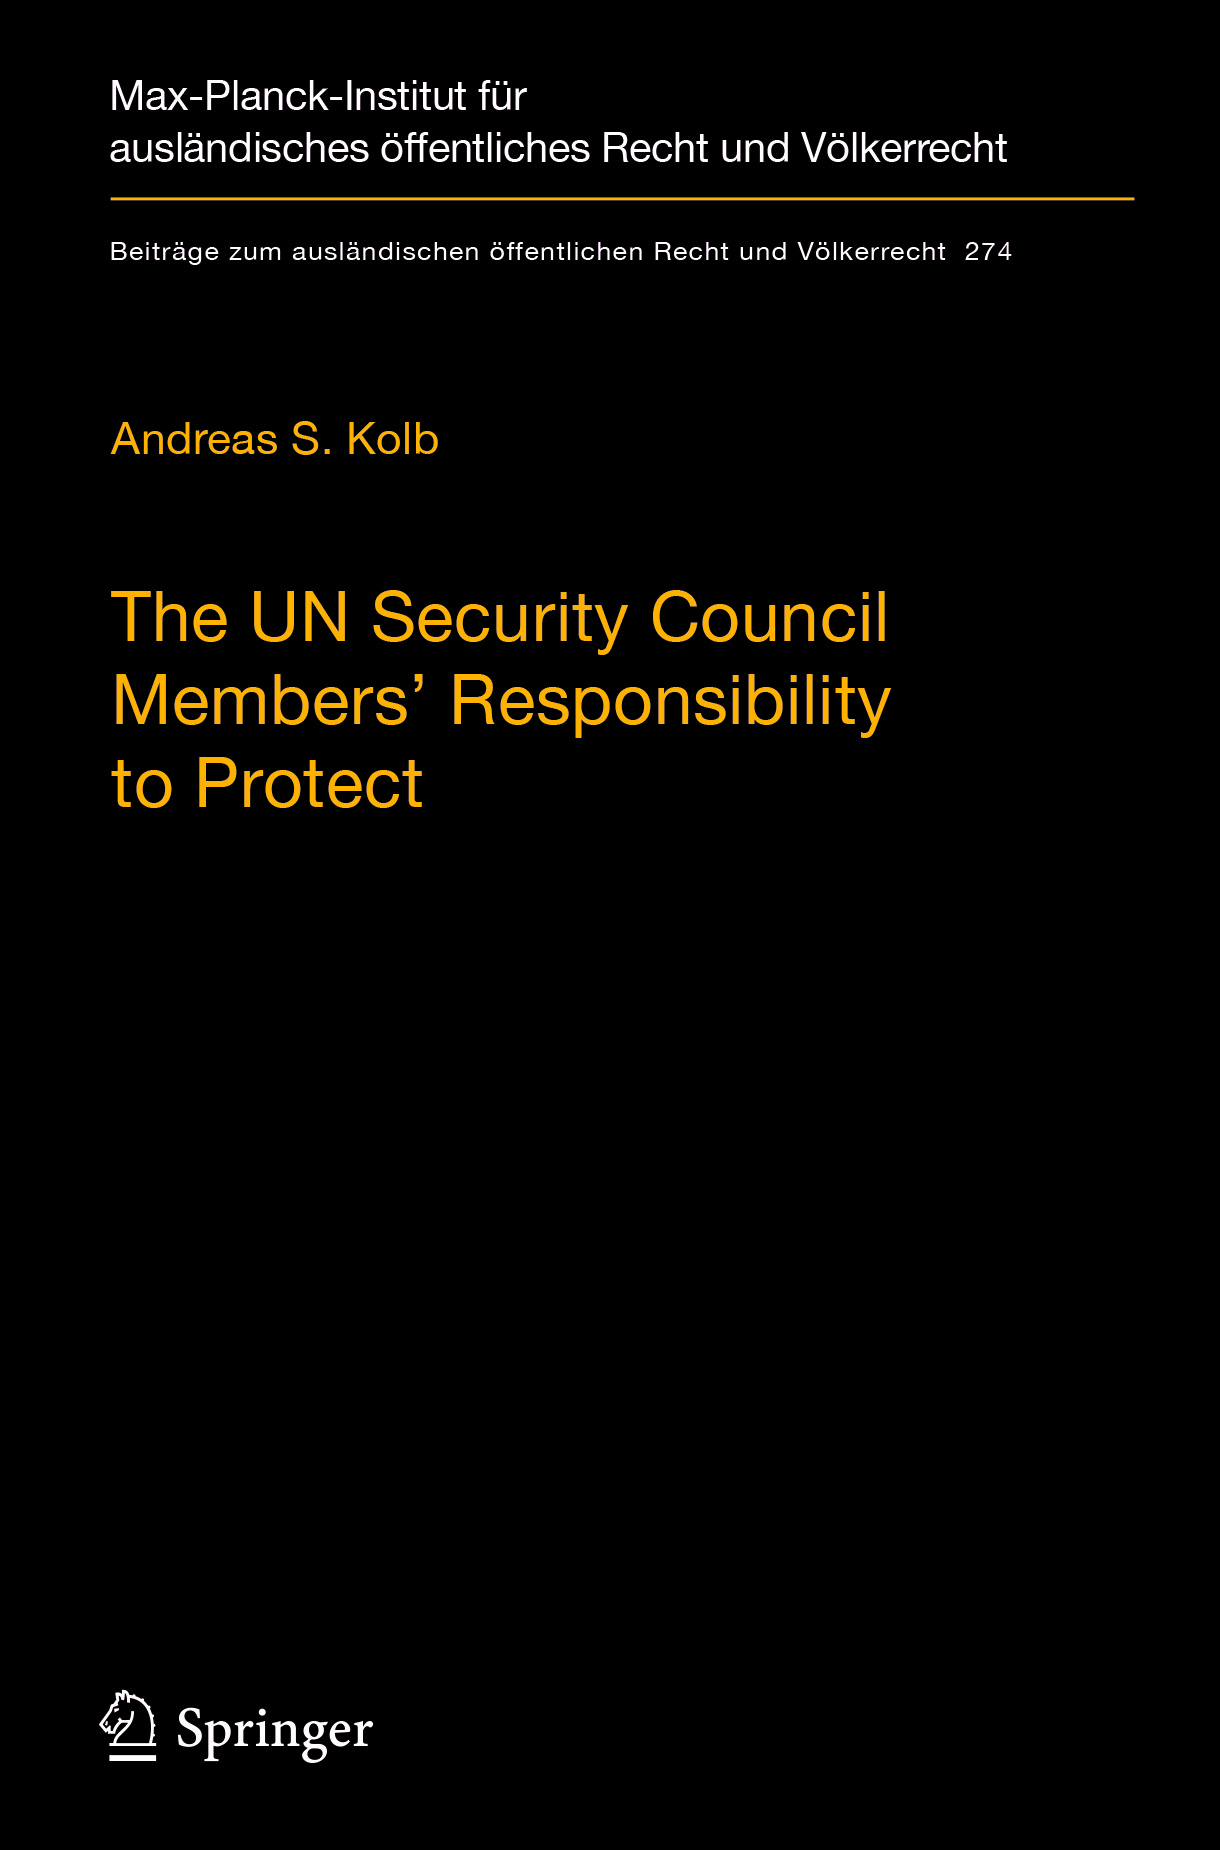 Kolb, Andreas S. - The UN Security Council Members' Responsibility to Protect, ebook